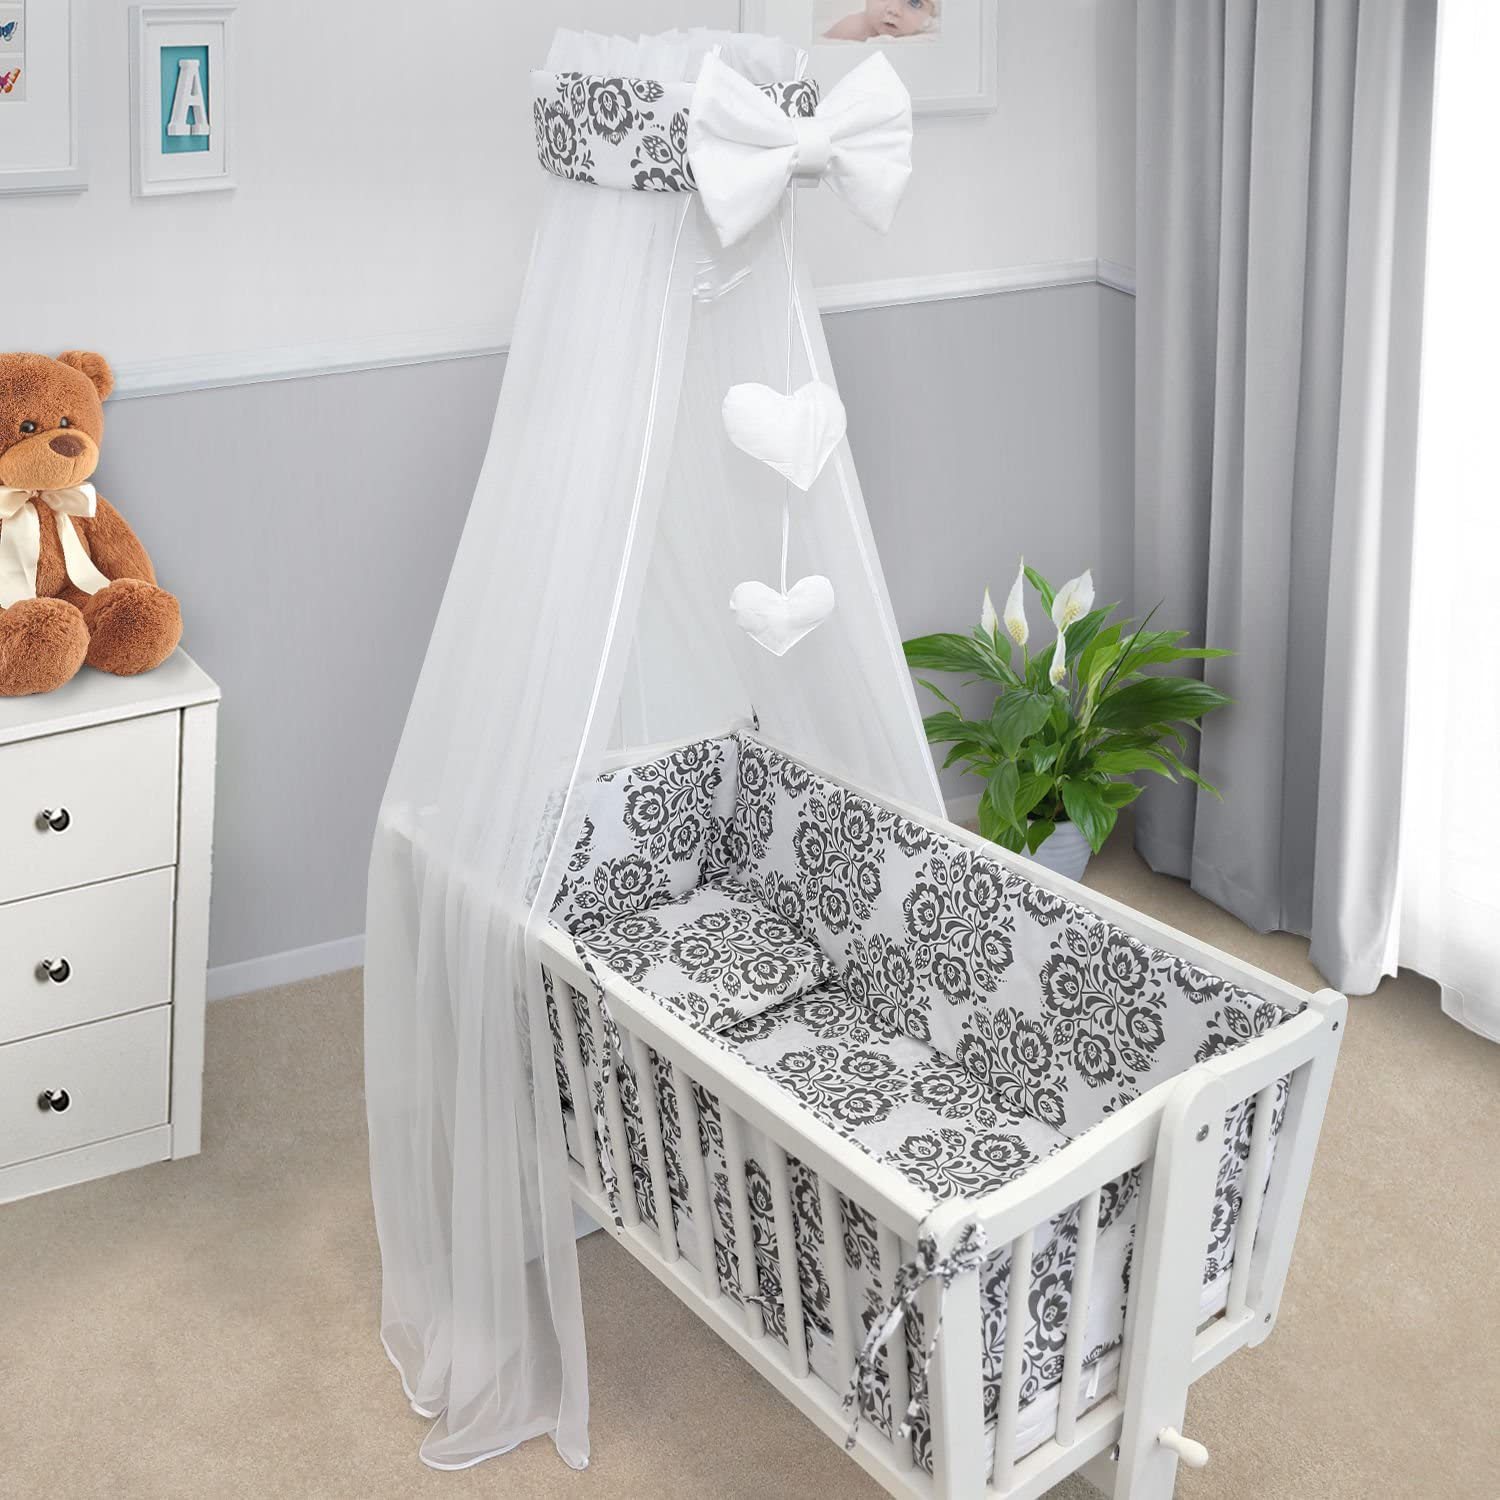 Baby Canopy Crib Drape Mosquito NET with Holder to FIT Crib Dino Green